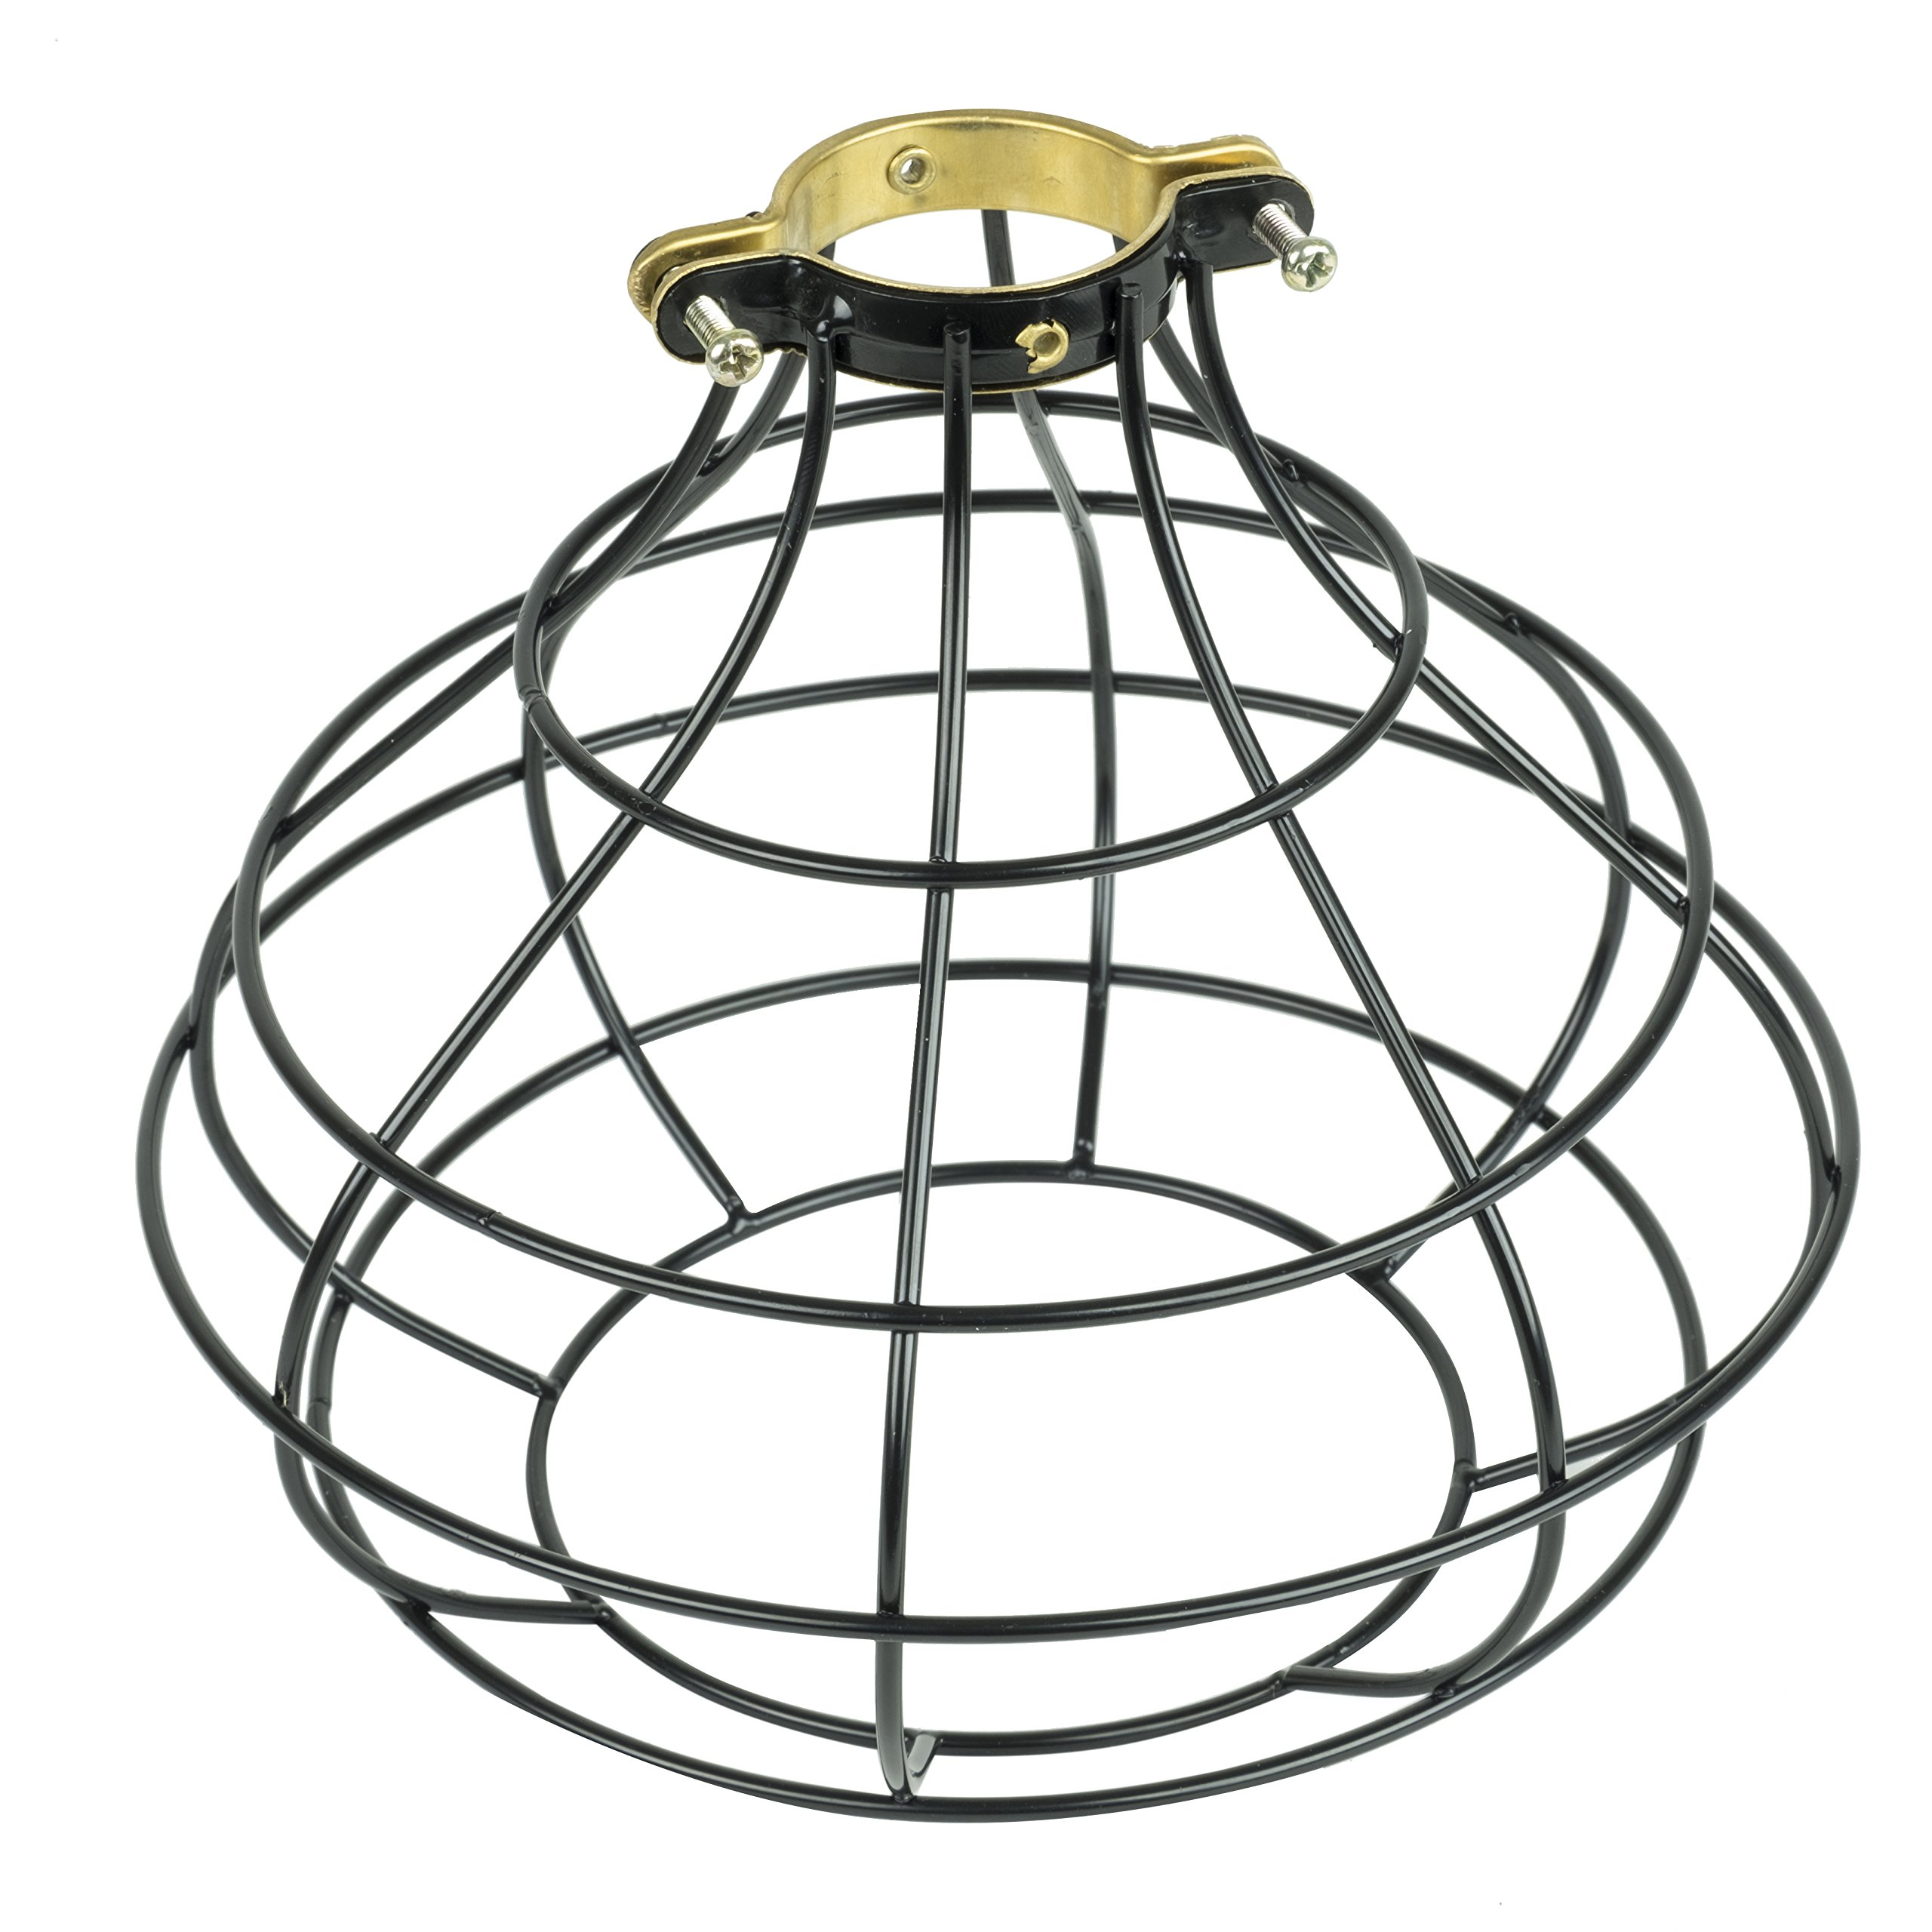 Industrial Cage Pendant Light with 15' Black Fabric Plug-in Cord and Toggle Switch Includes Edison LED Bulb in Black by Rustic State (Image #6)